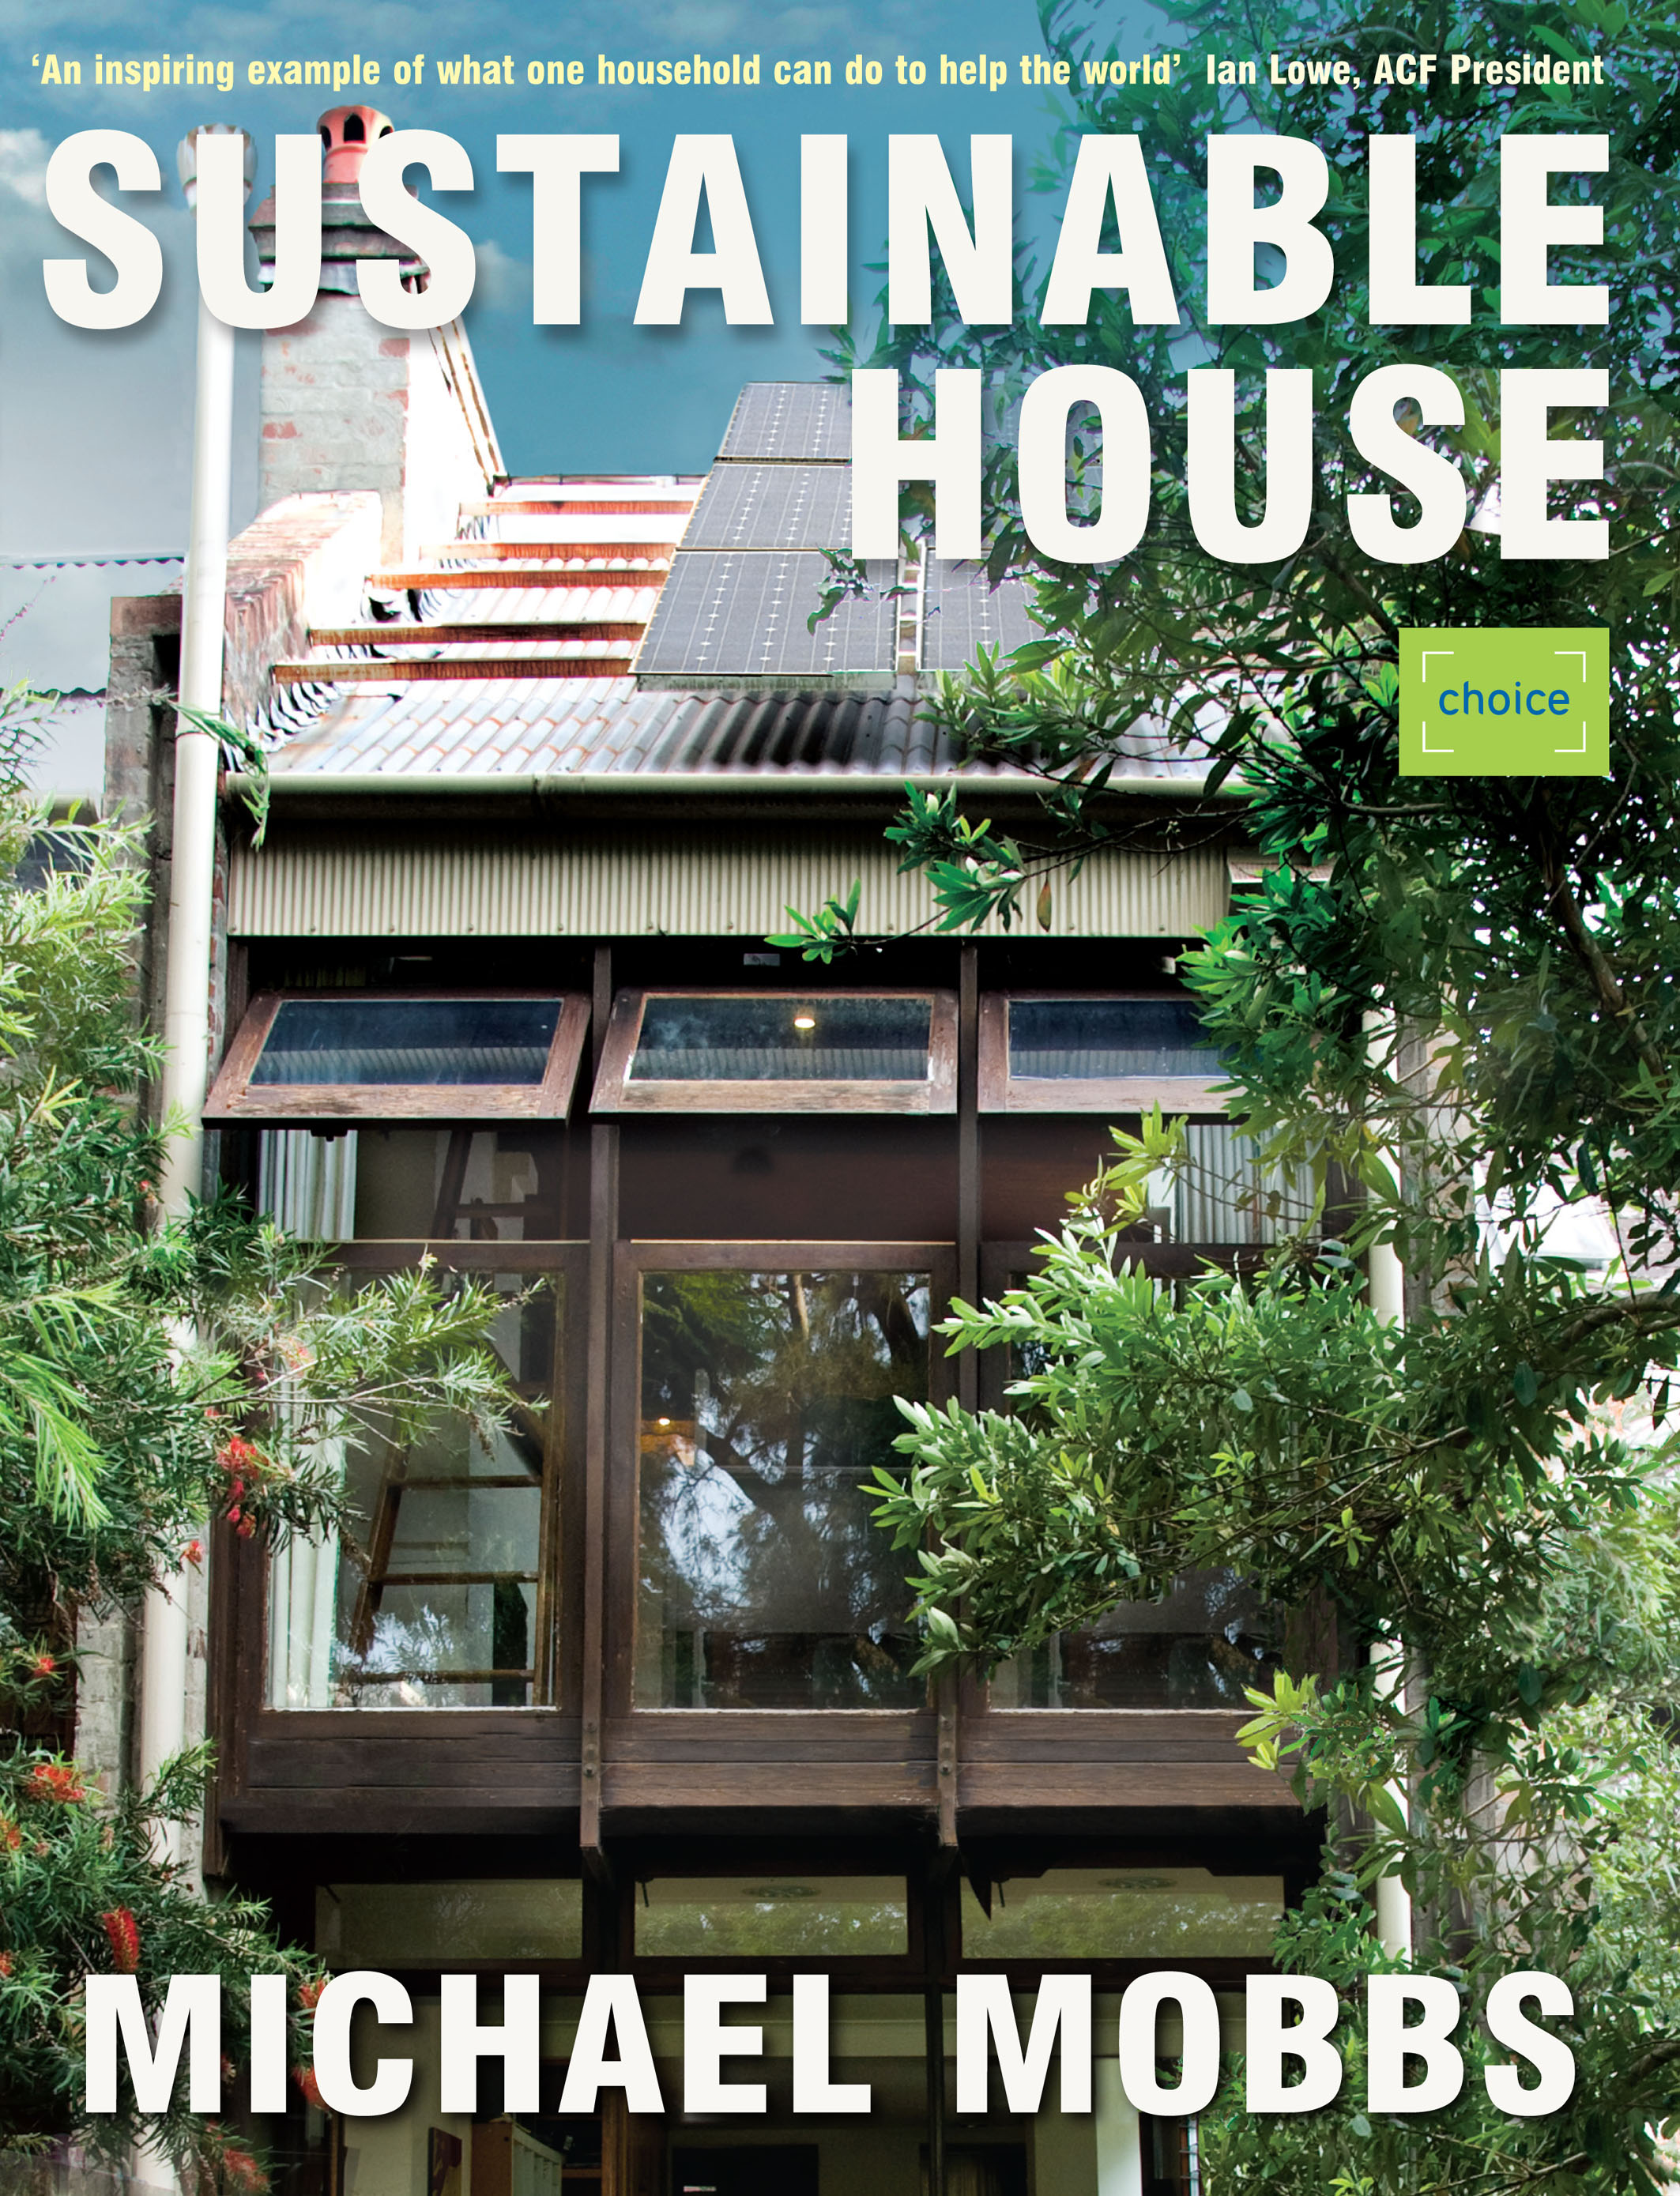 Michael Mobbs offers 9 tips for a more sustainable home